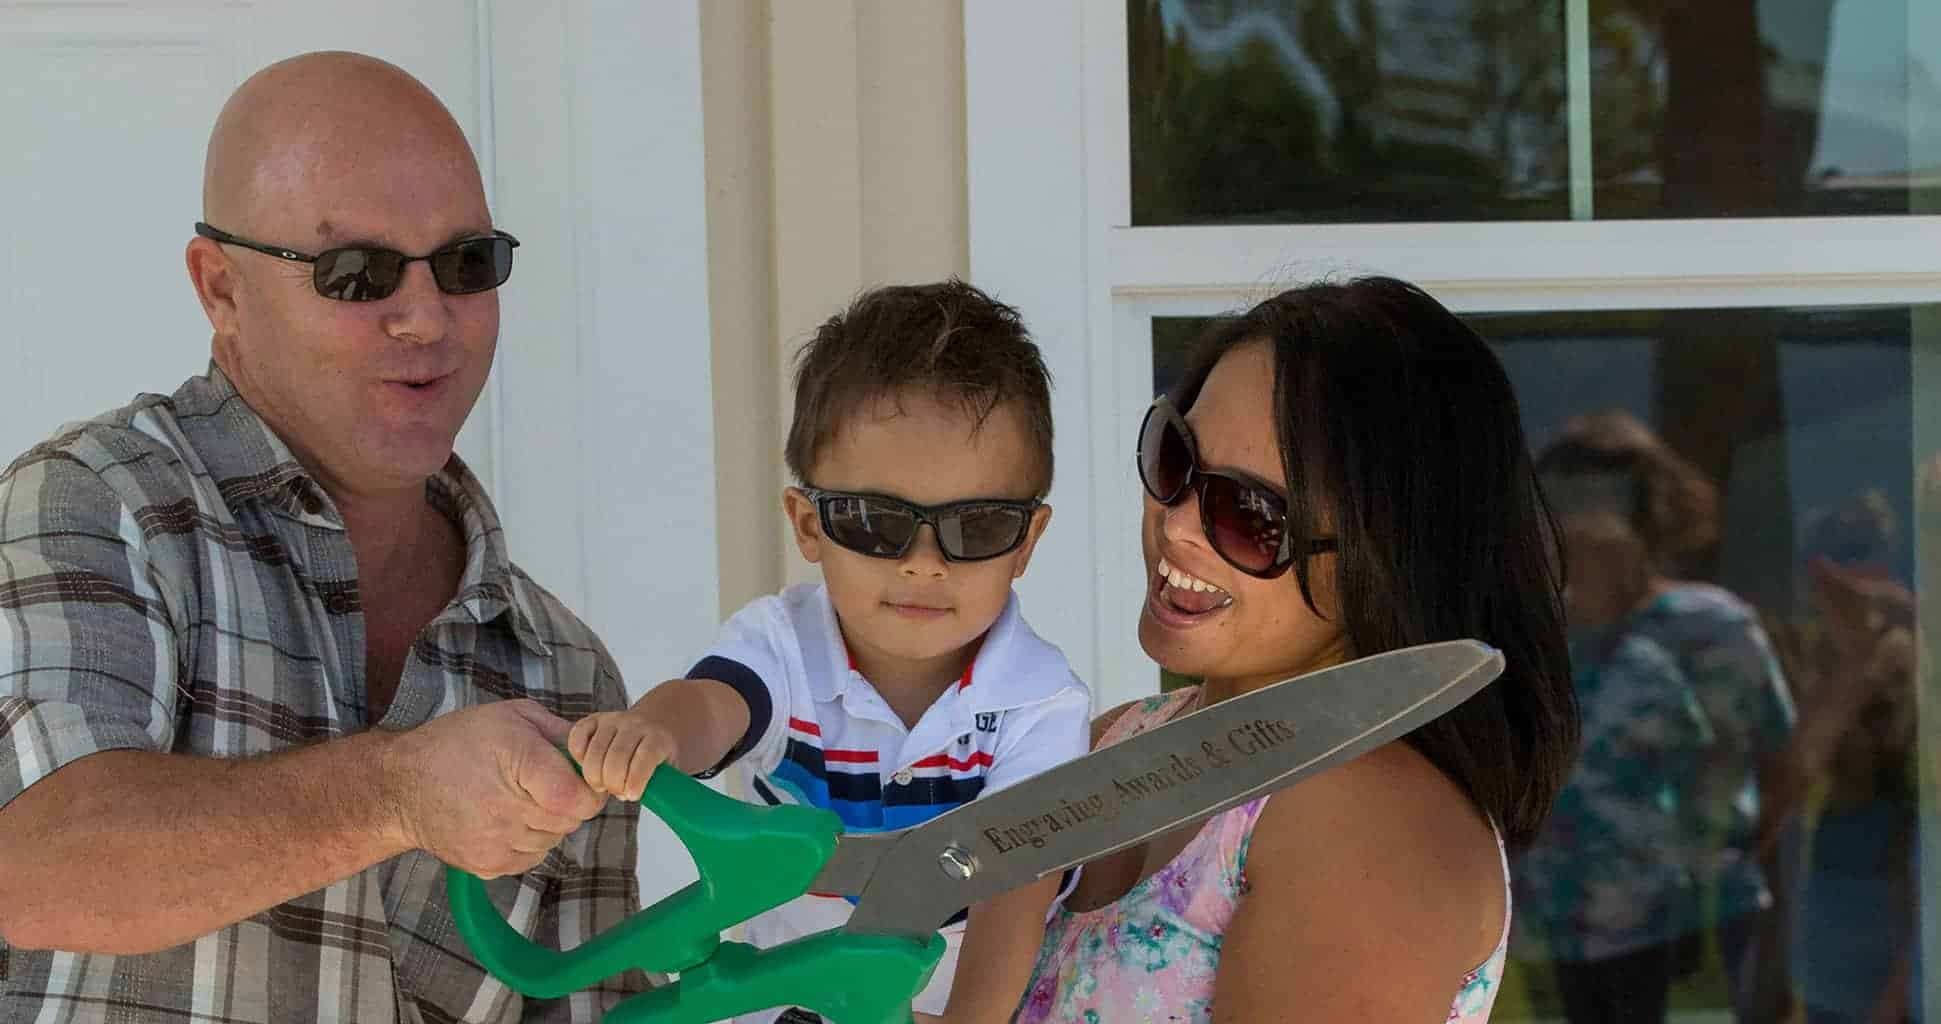 Mother Father and Child holding large scissors